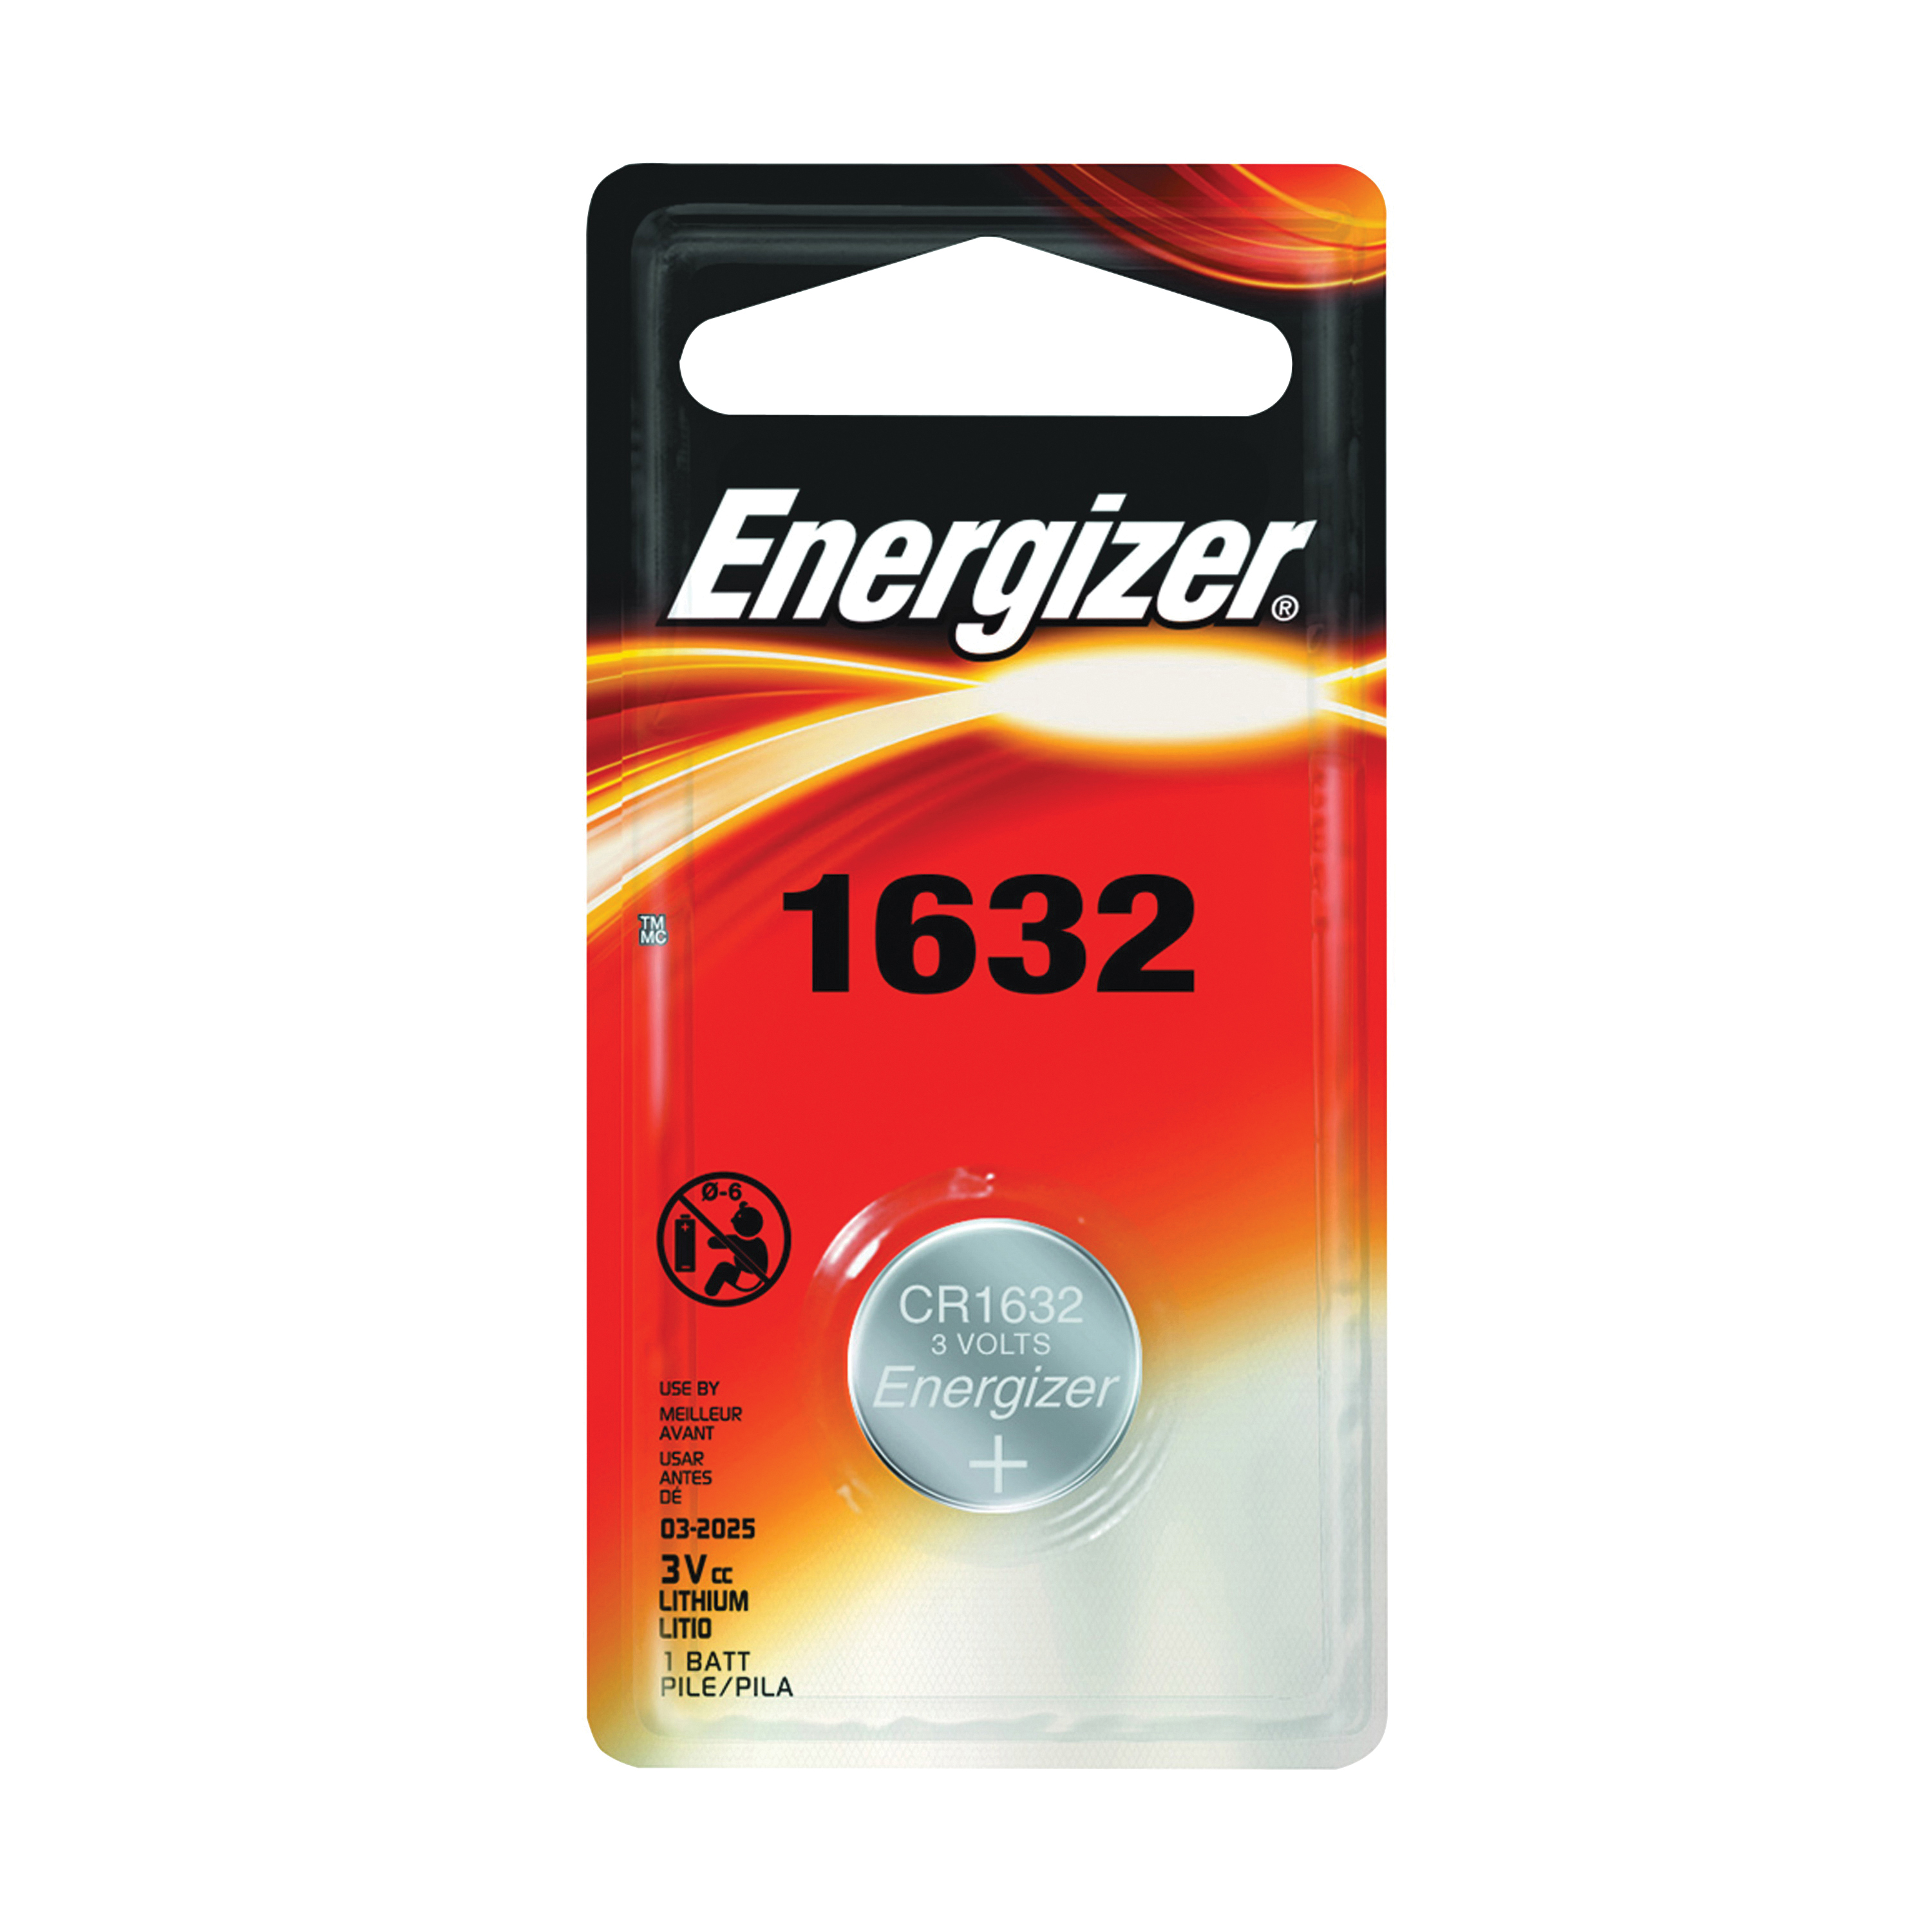 Picture of Energizer ECR1632BP Coin Cell Battery, 3 V Battery, 130 mAh, CR1632 Battery, Lithium, Manganese Dioxide